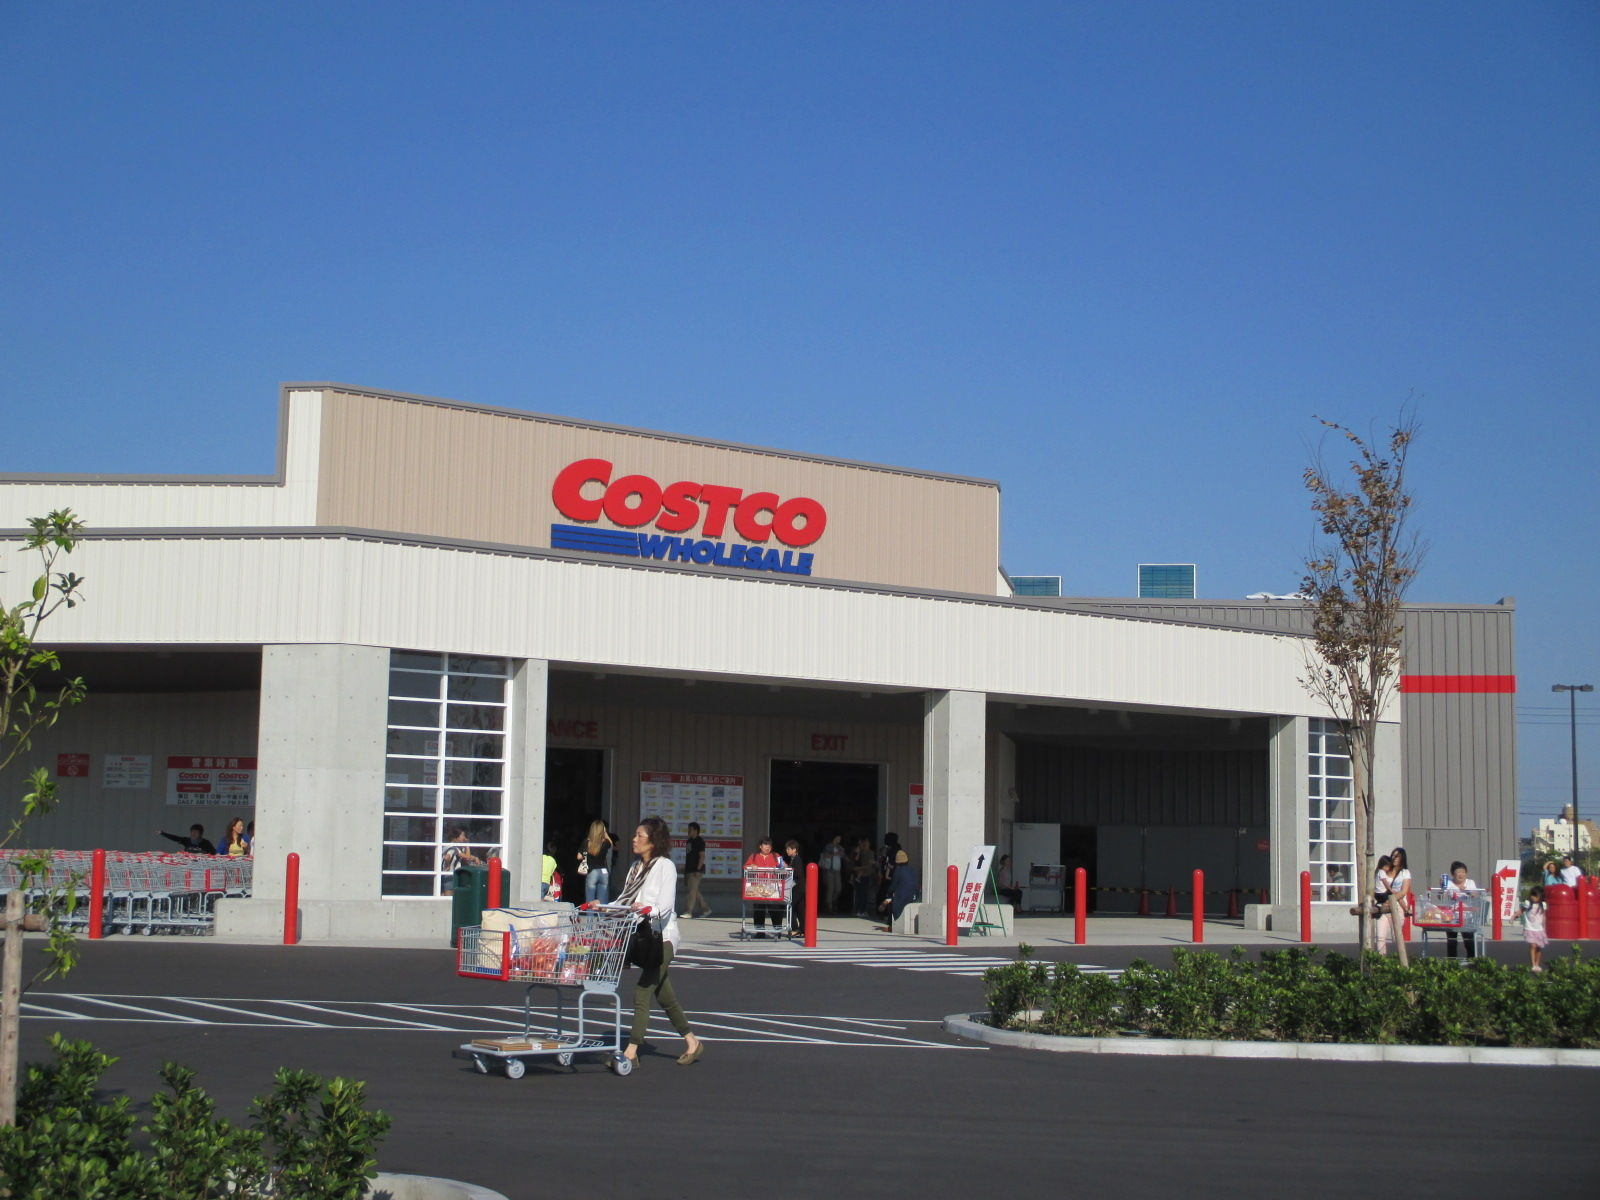 Review of Costco Travel